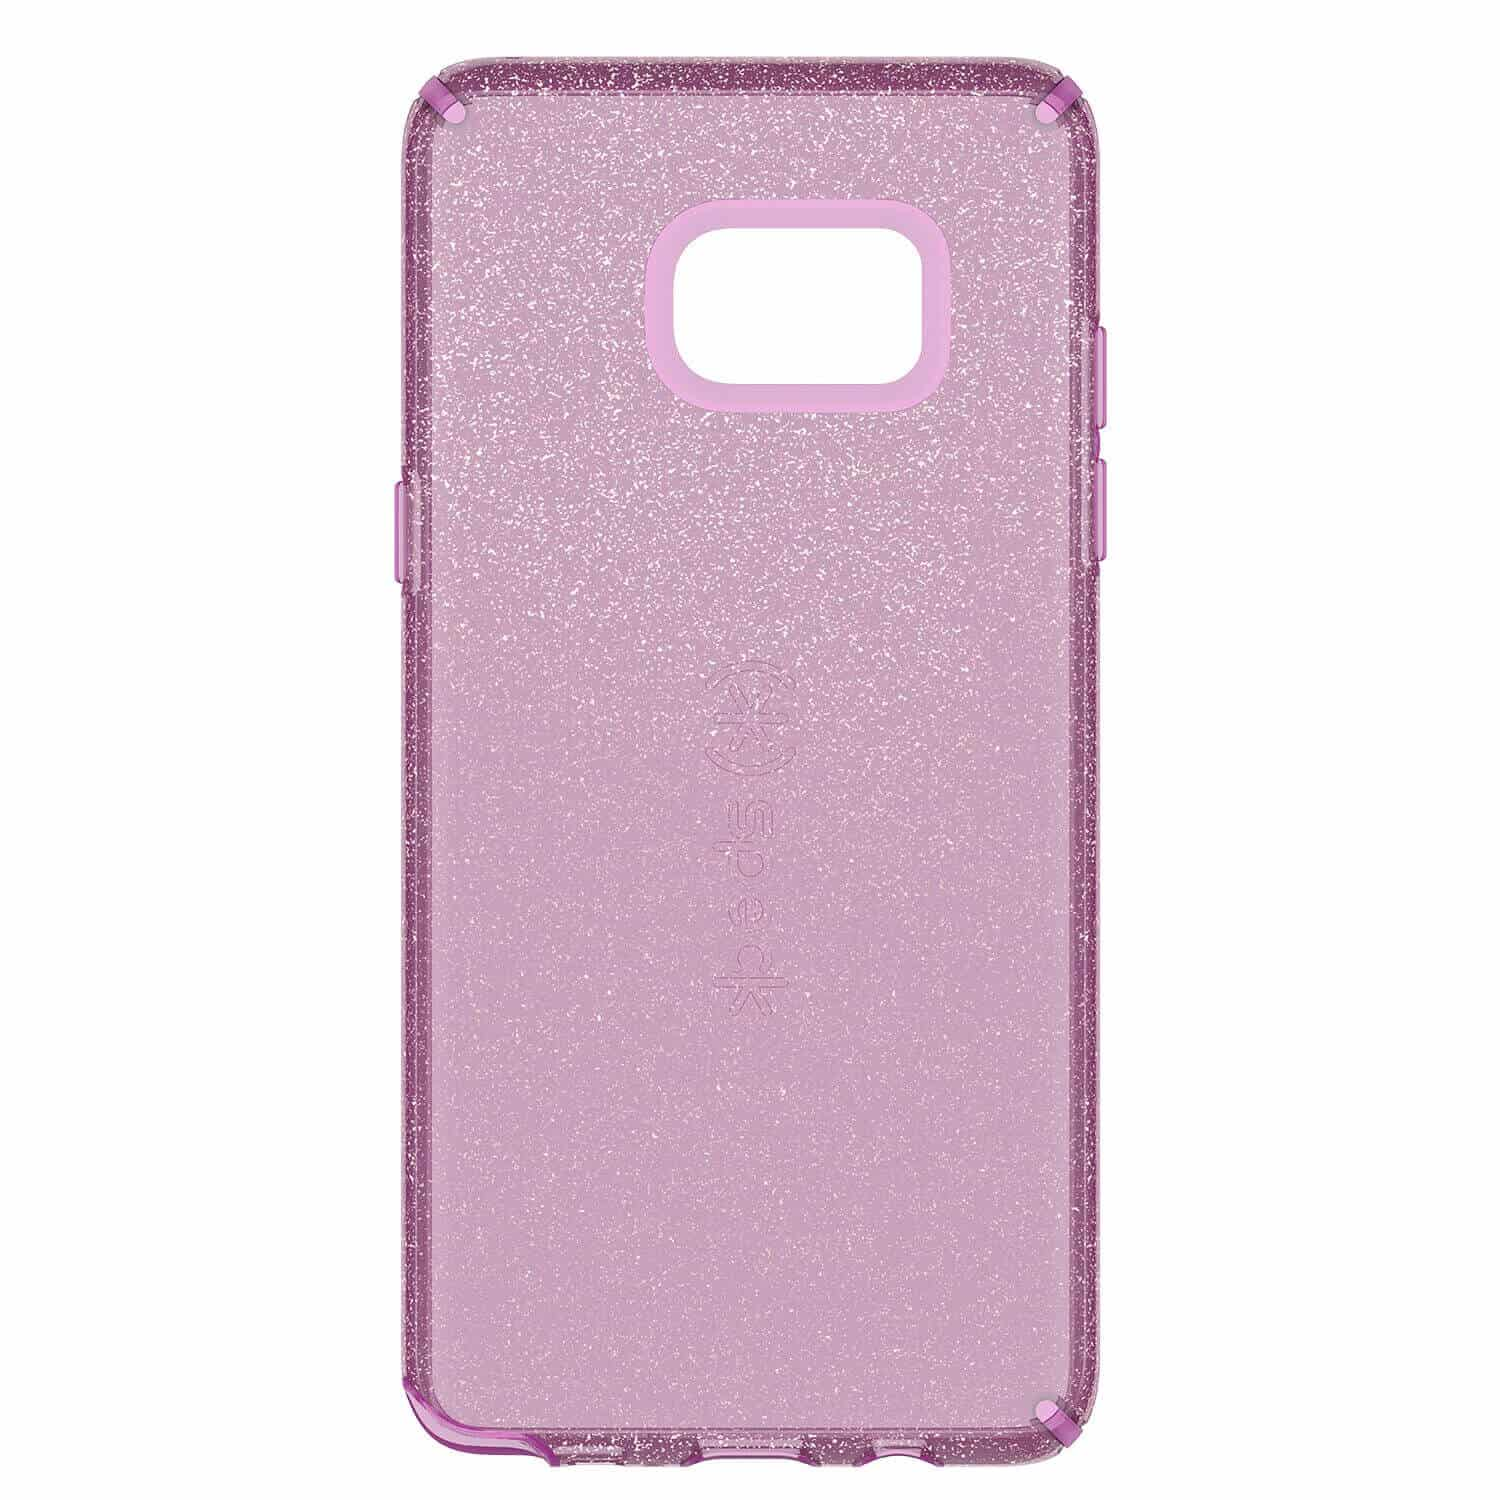 Speck CandyShell Case Galaxy Note 7 KK (3)